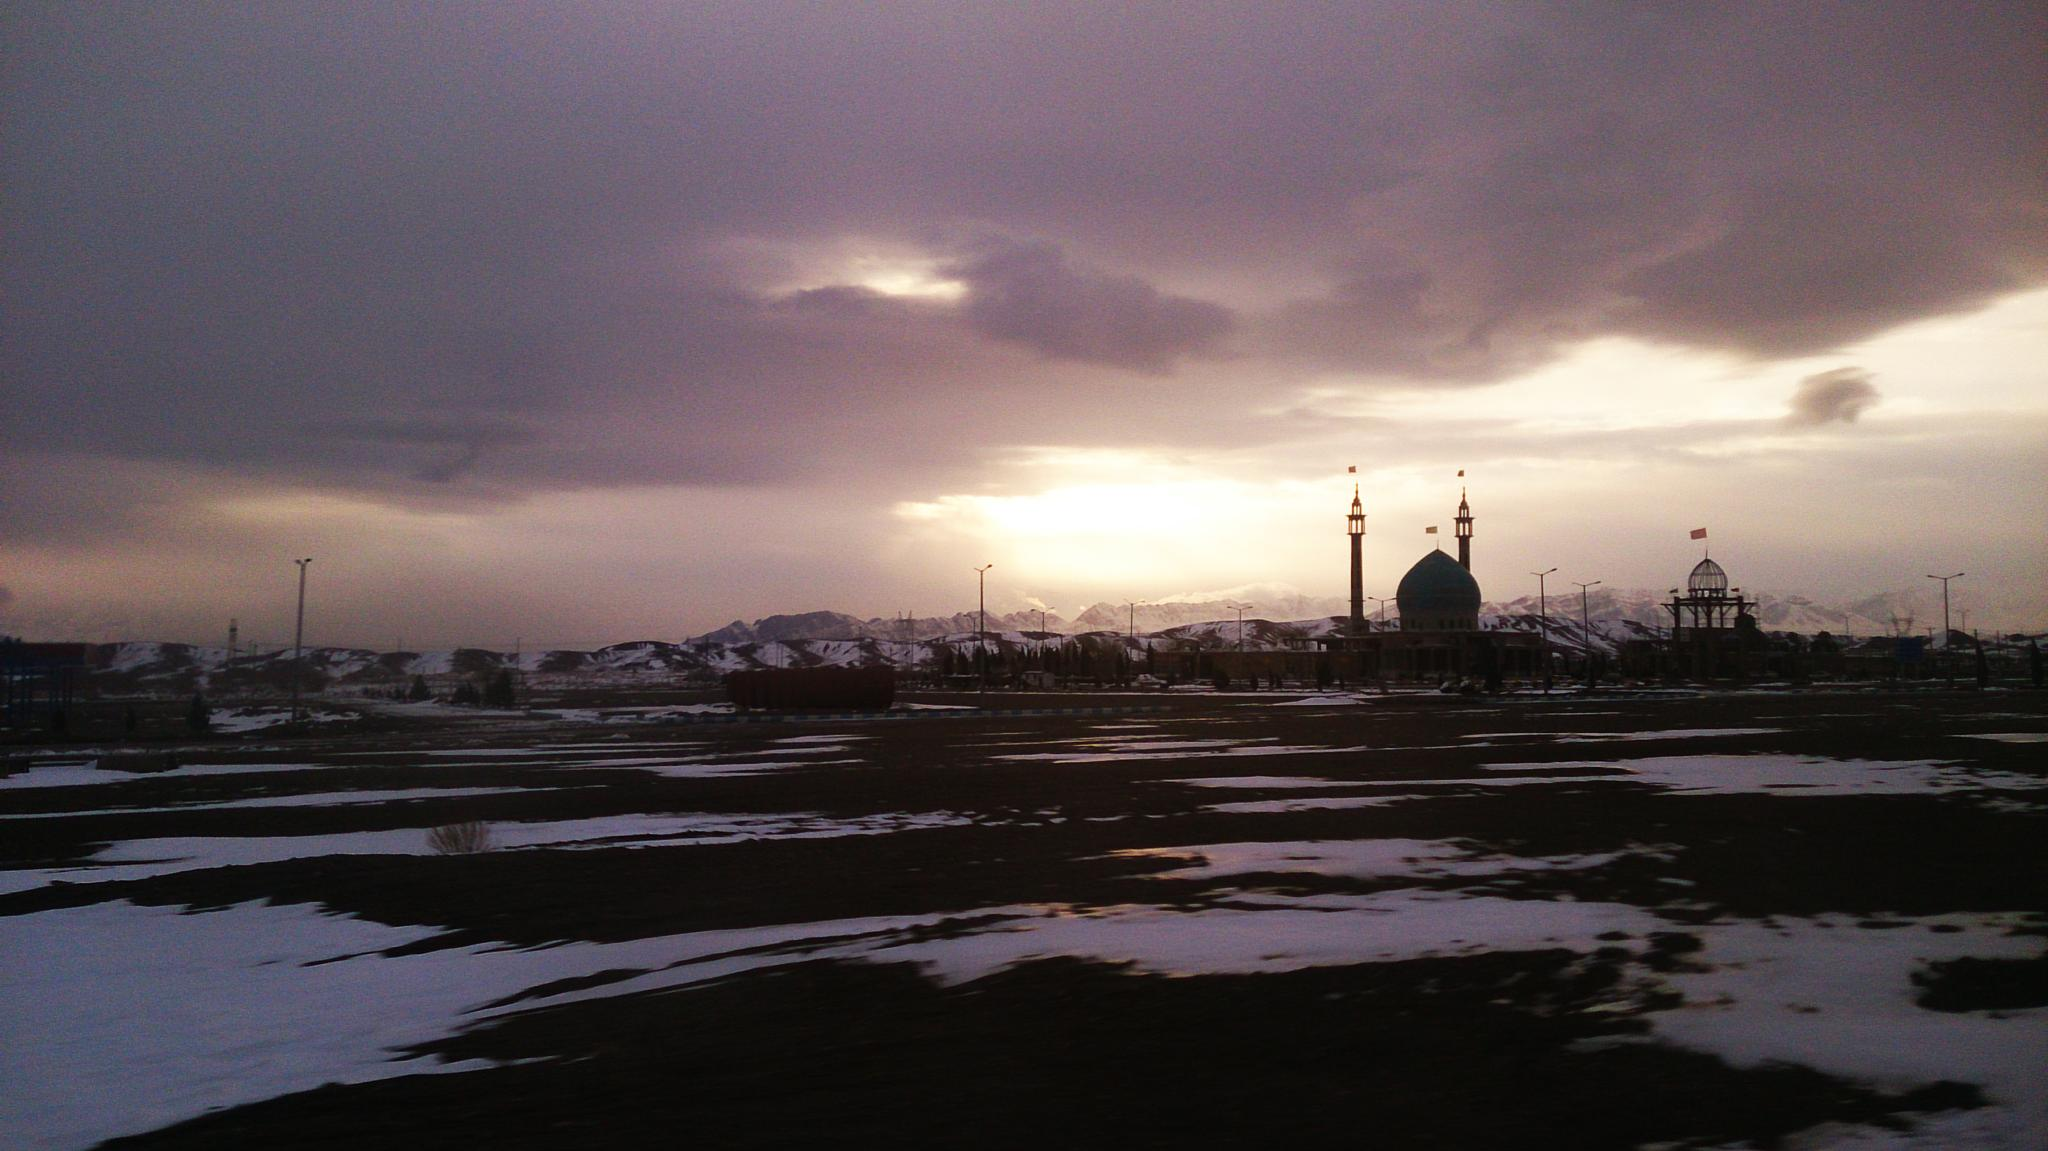 mosque among the snowy mountains by HEUER